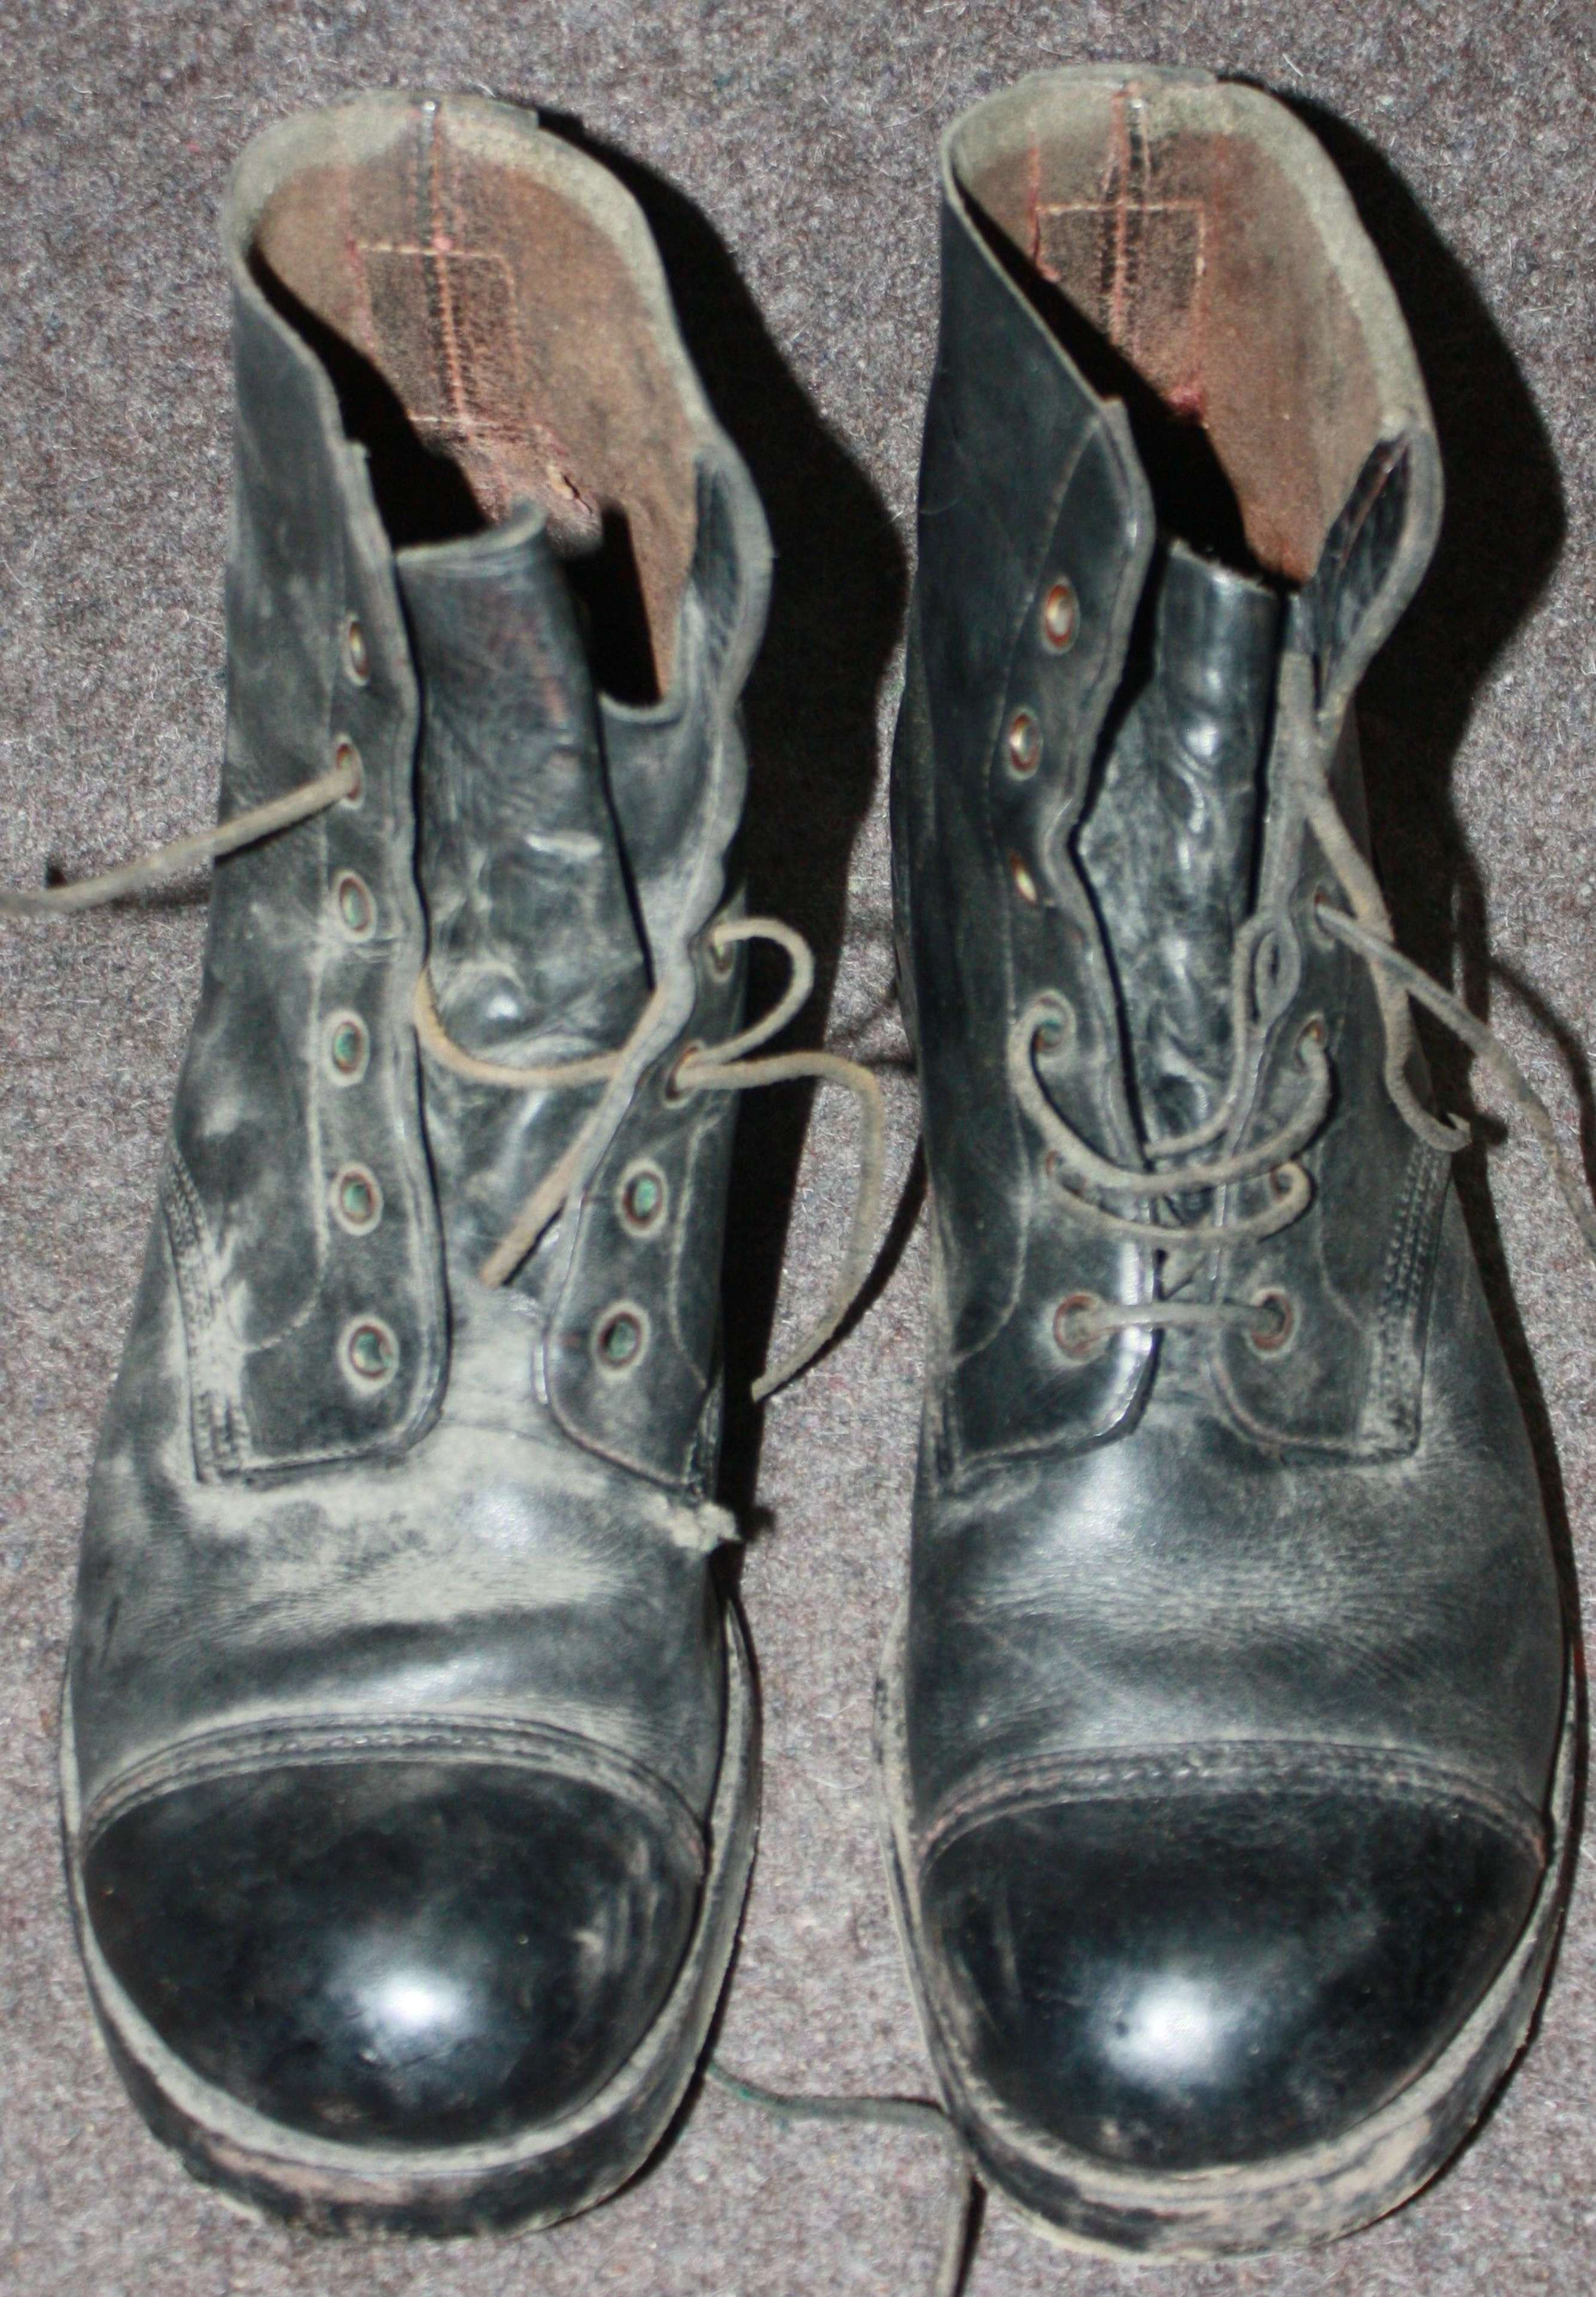 A BLACKENED PAIR OF THE BRITISH LEATHER JUNGLE BOOTS 1944 DATED SIZE 9